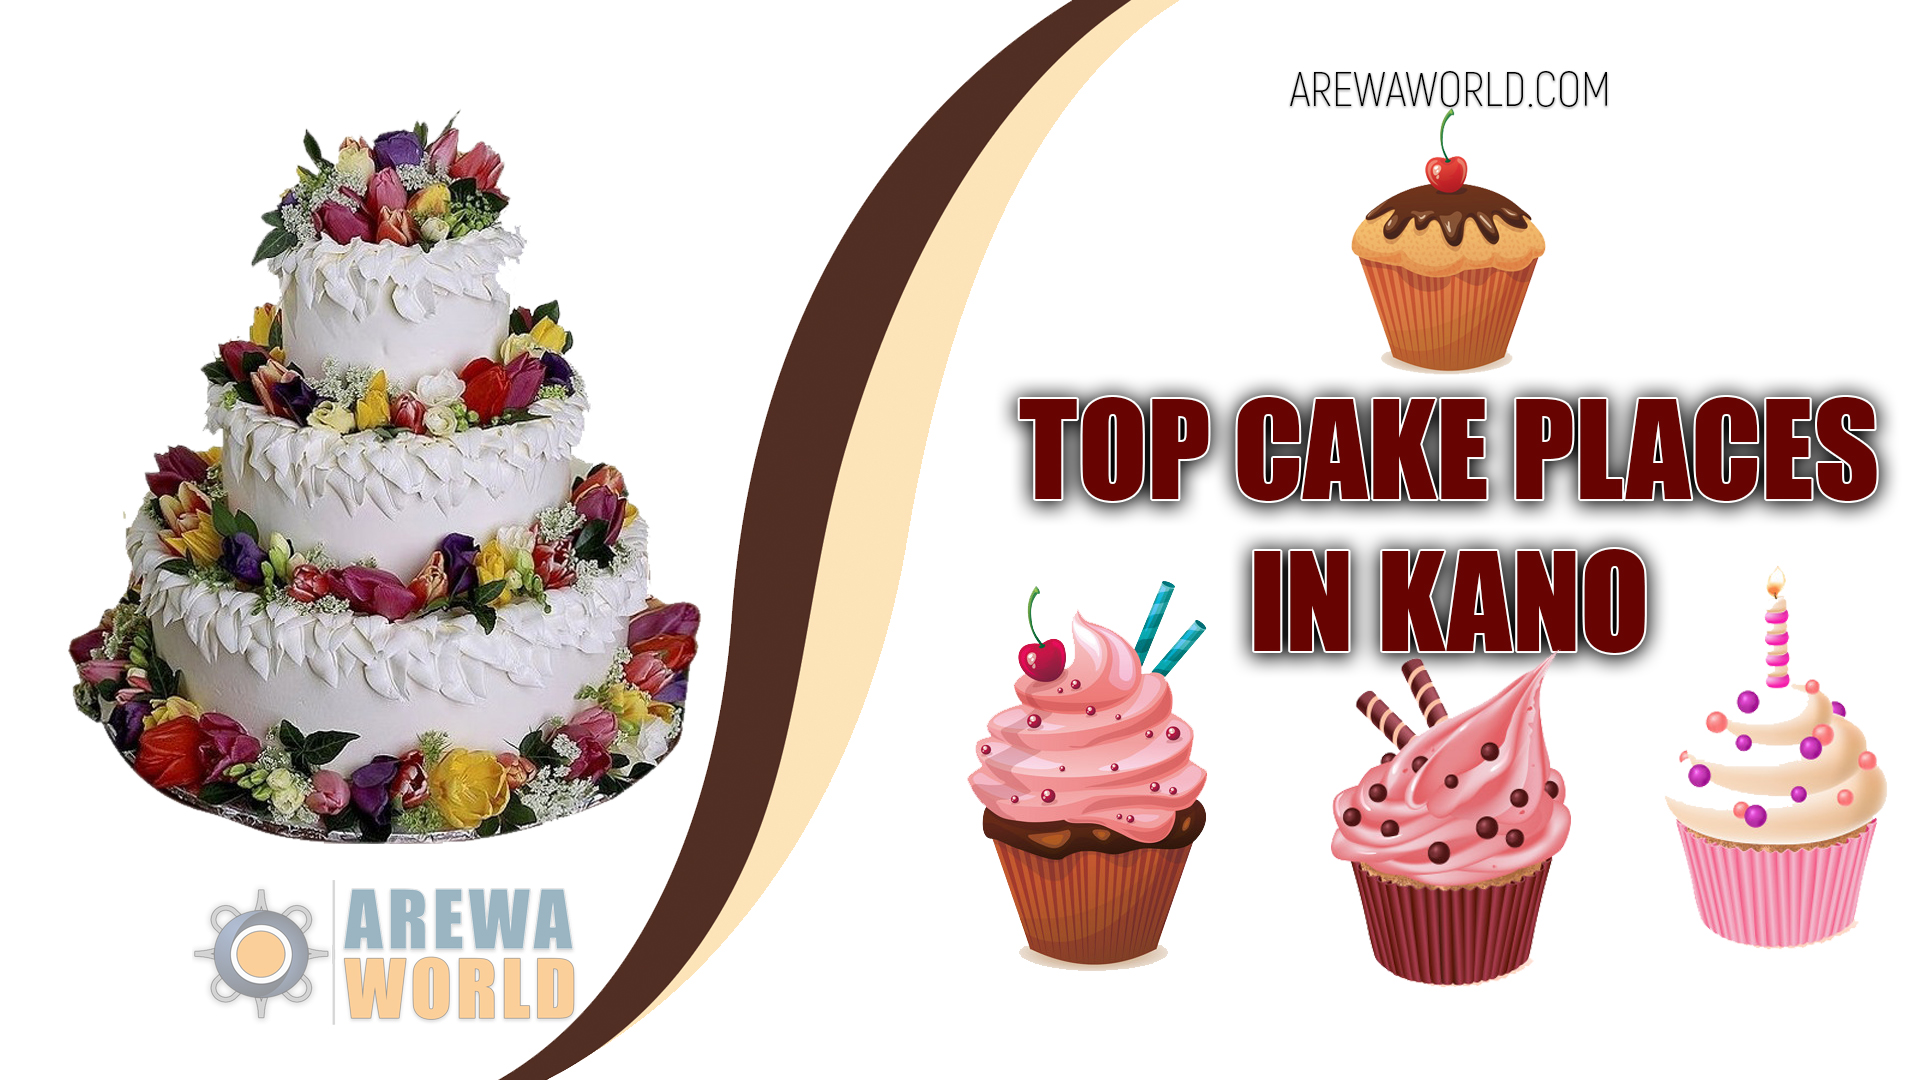 10 Bakers in Kano, Nigeria